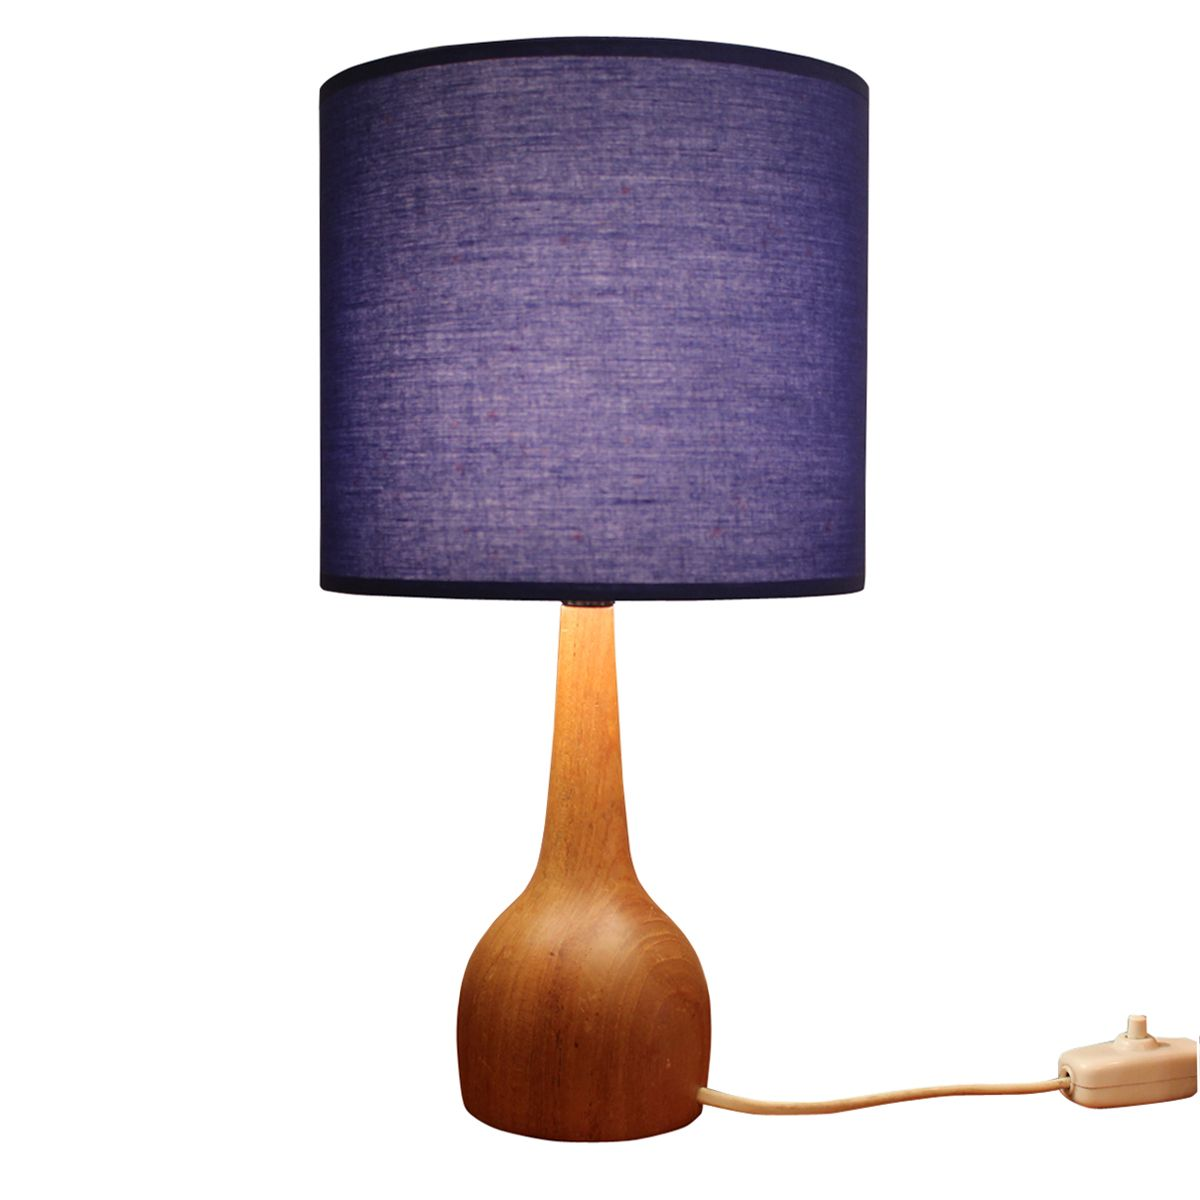 swedish wooden table lamp with blue shade 1960s for sale at pamono. Black Bedroom Furniture Sets. Home Design Ideas